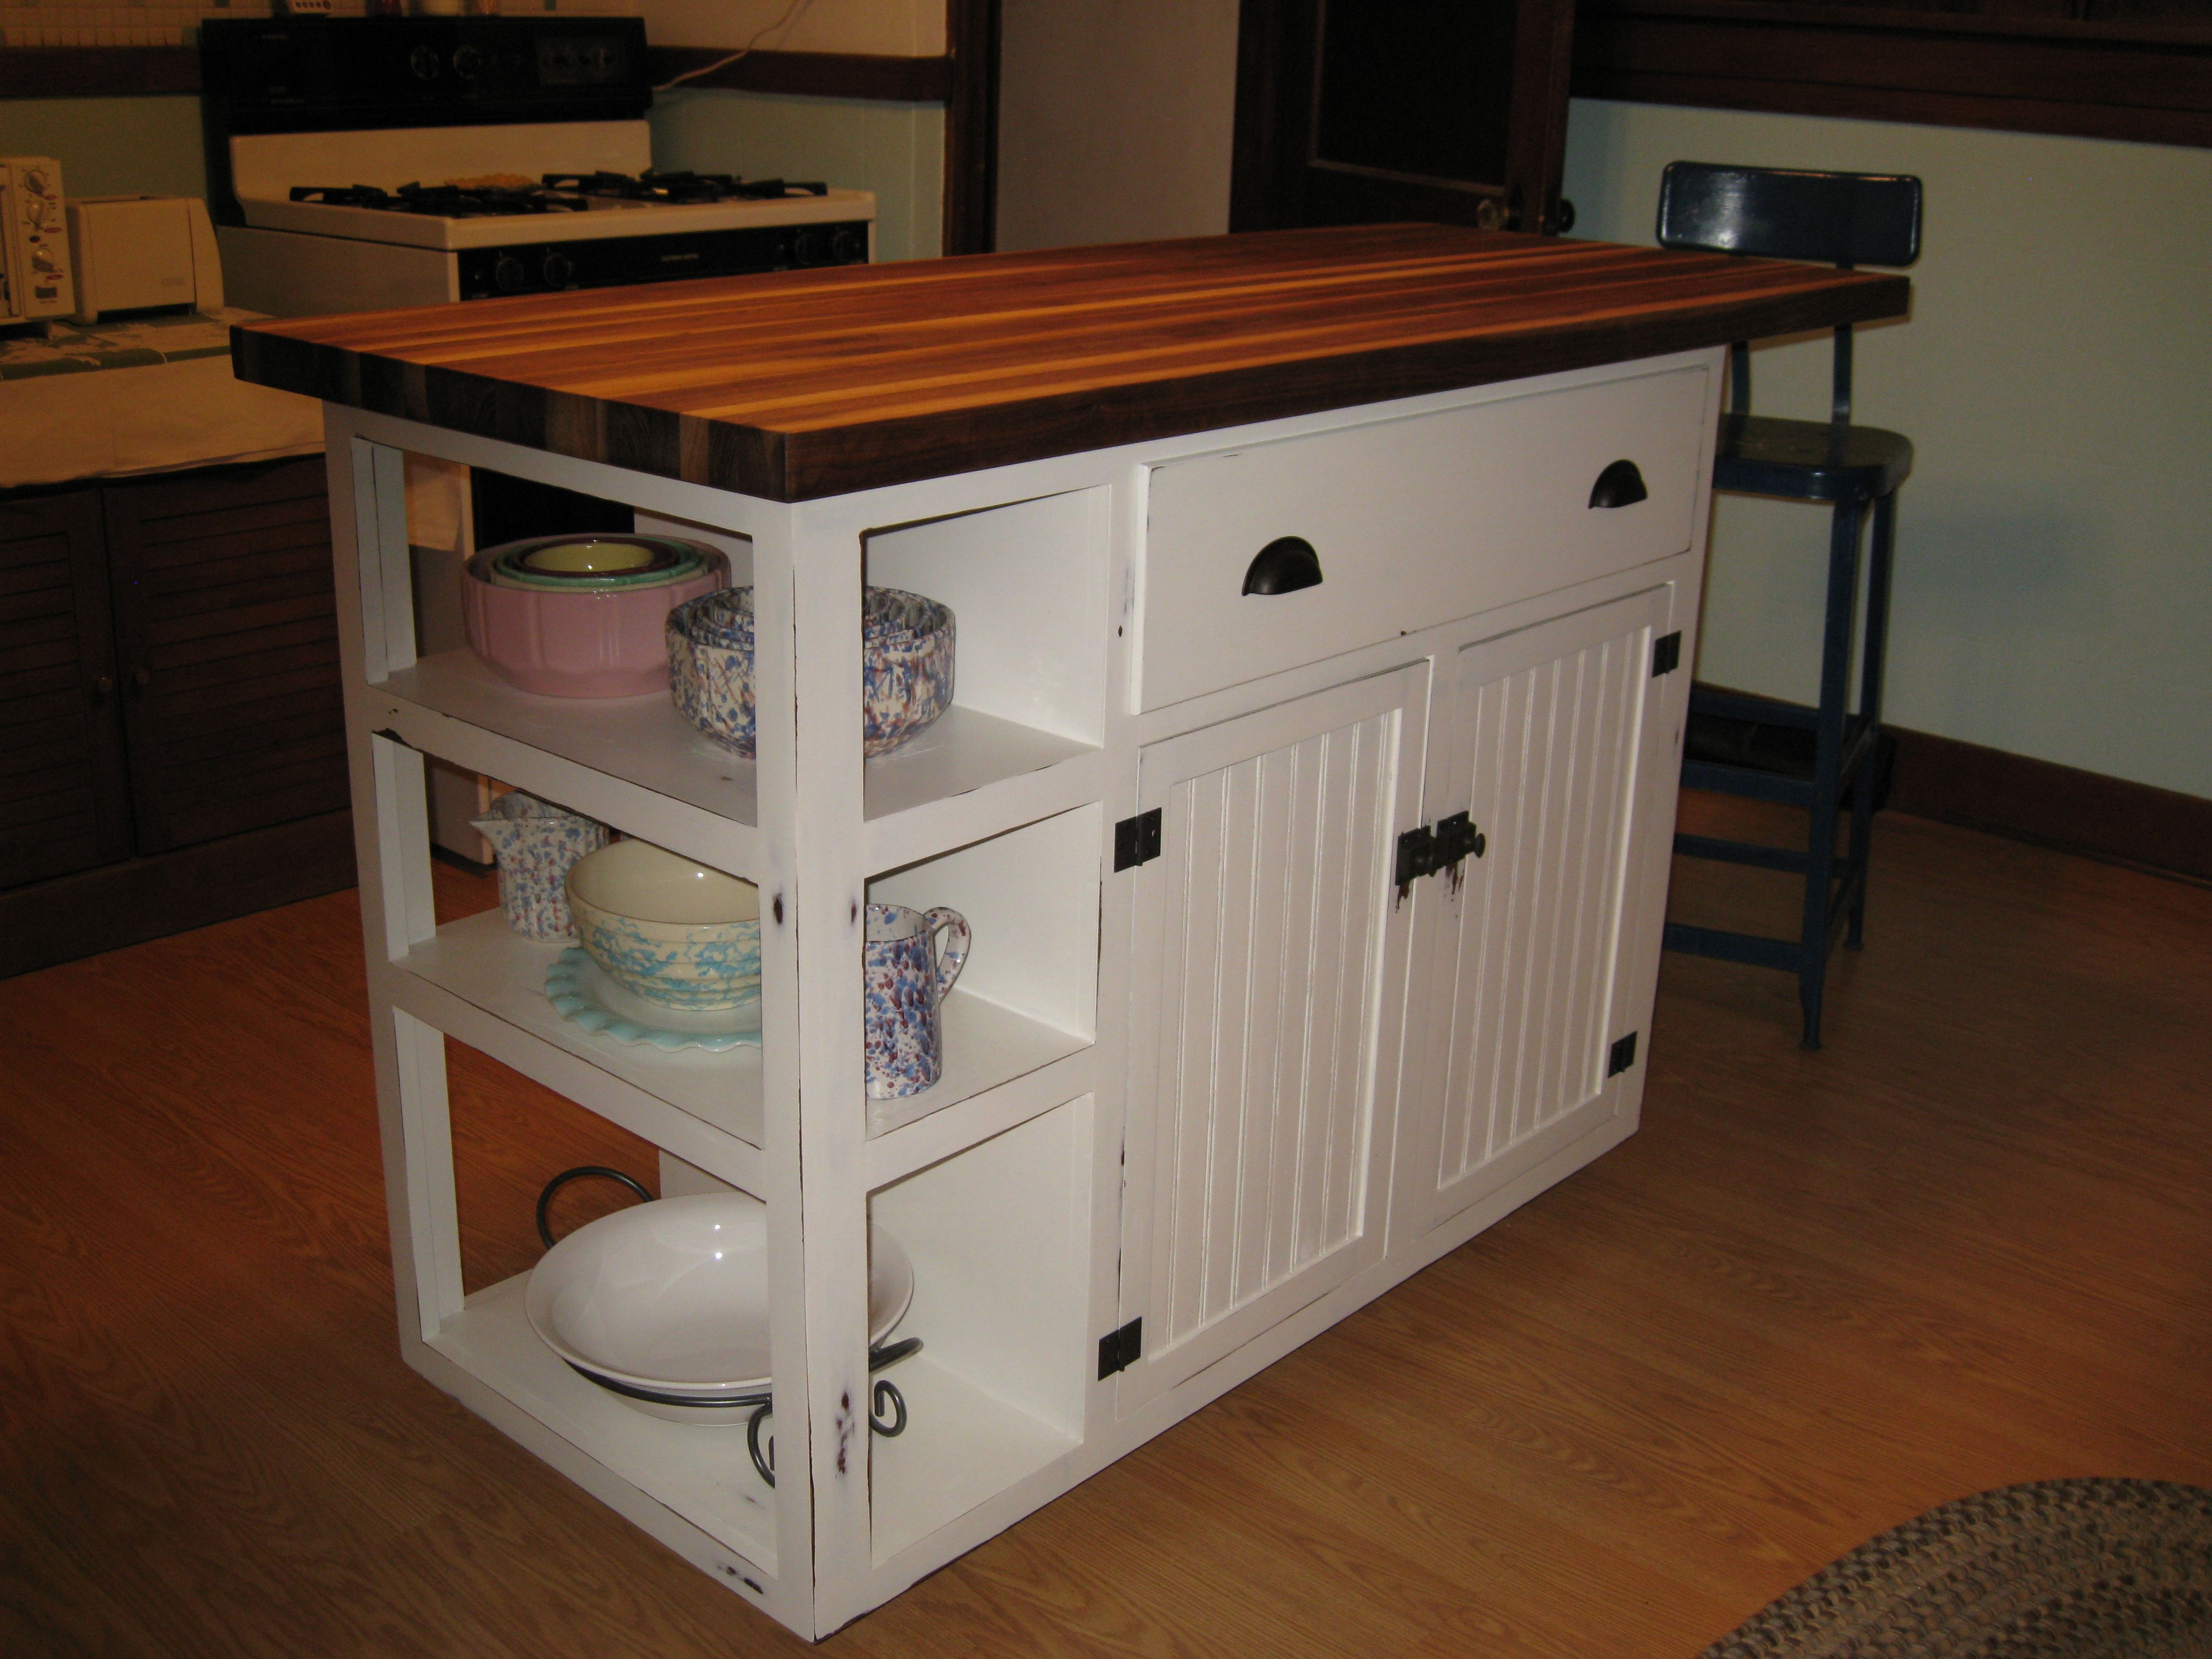 diy kitchen island kitchen island do it yourself home projects from ana white my style. Black Bedroom Furniture Sets. Home Design Ideas